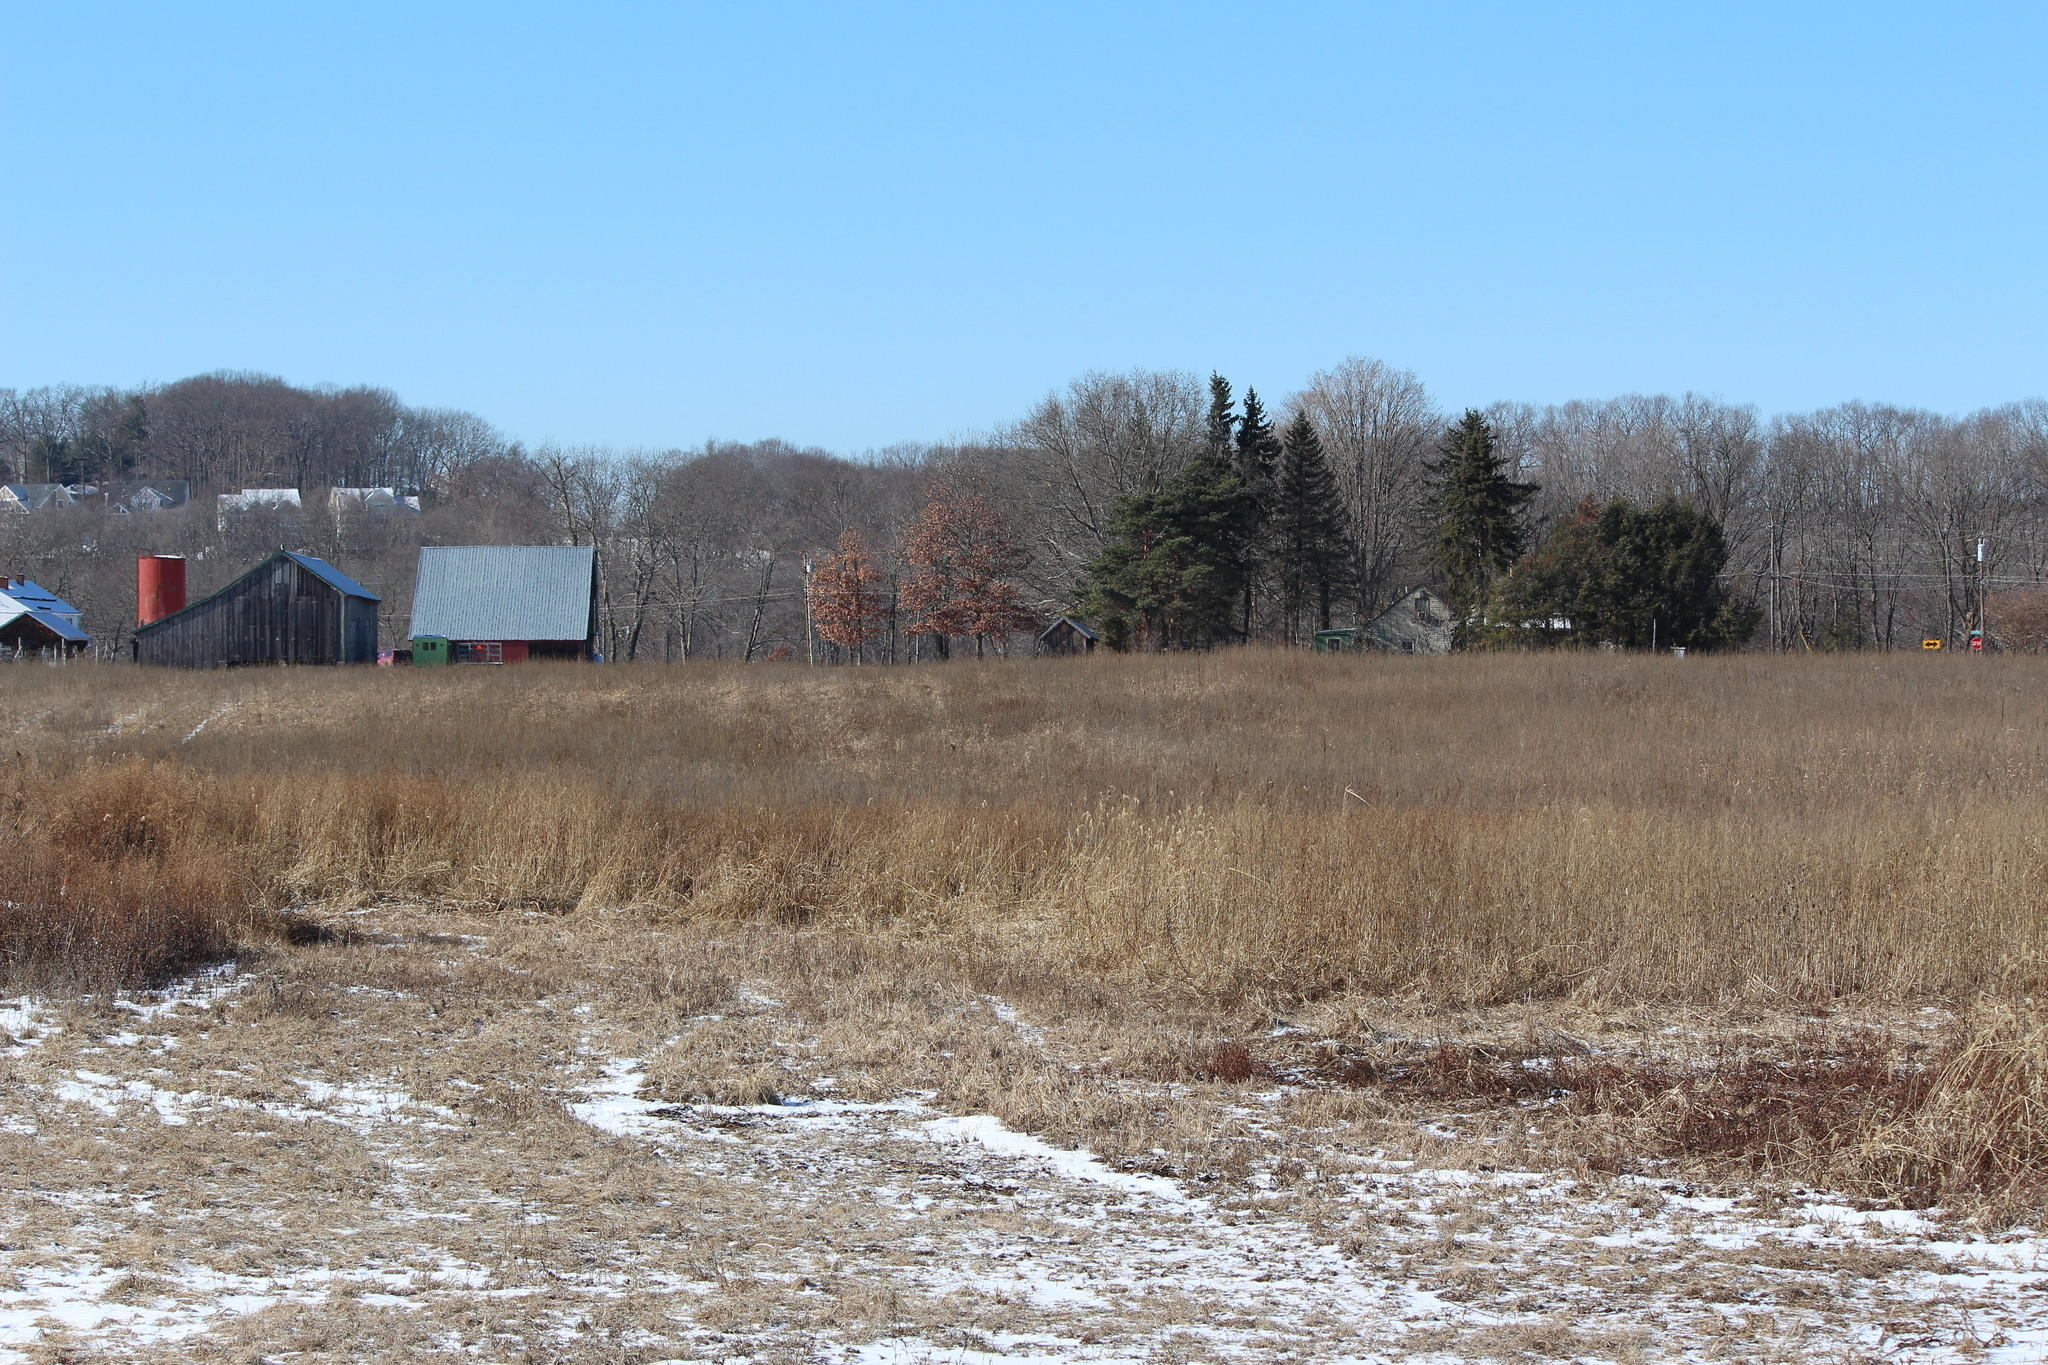 The town council unanimously approved the purchase of this 16.3-acre organic farm in South Glastonbury.